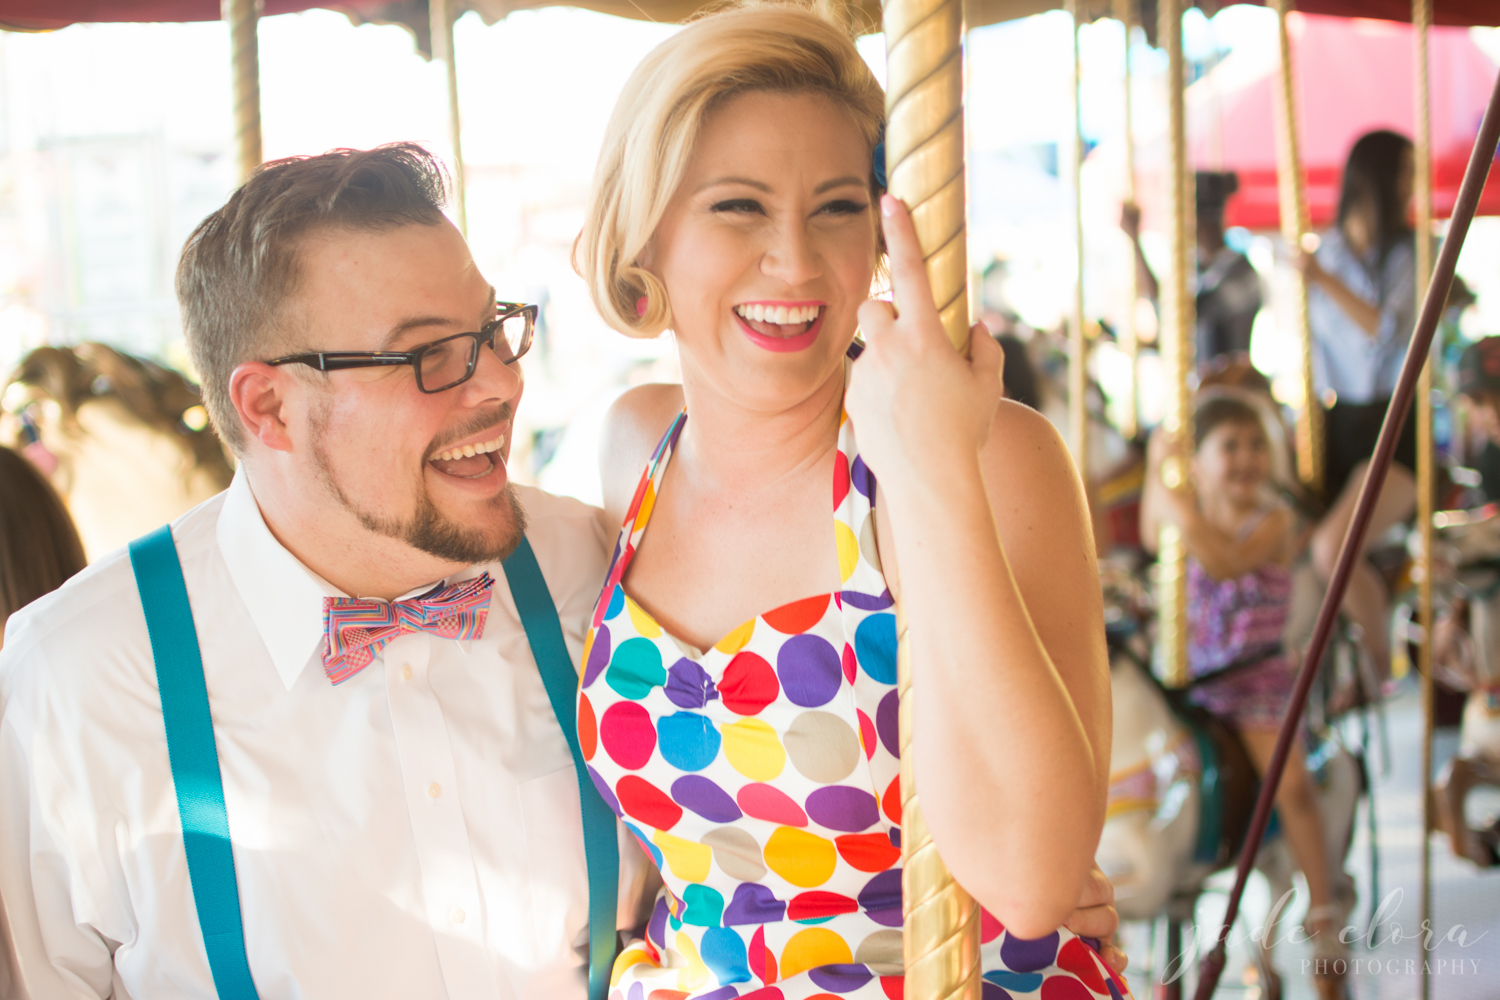 County Fair Polka Dot Dress Engagement Portrait